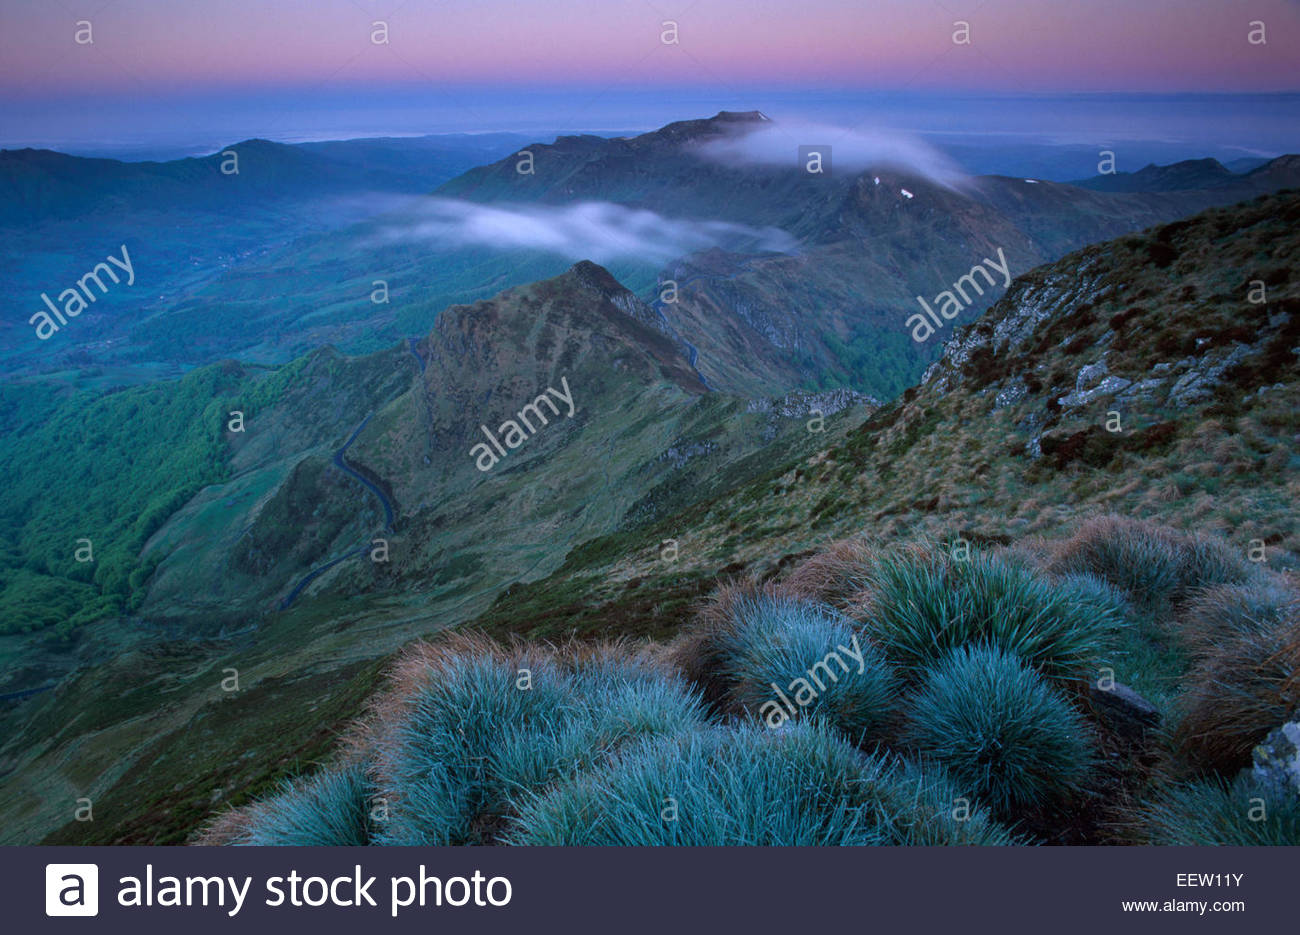 The Chaine of Puys, the Puy Mary, France. Legend of France - Stock Image